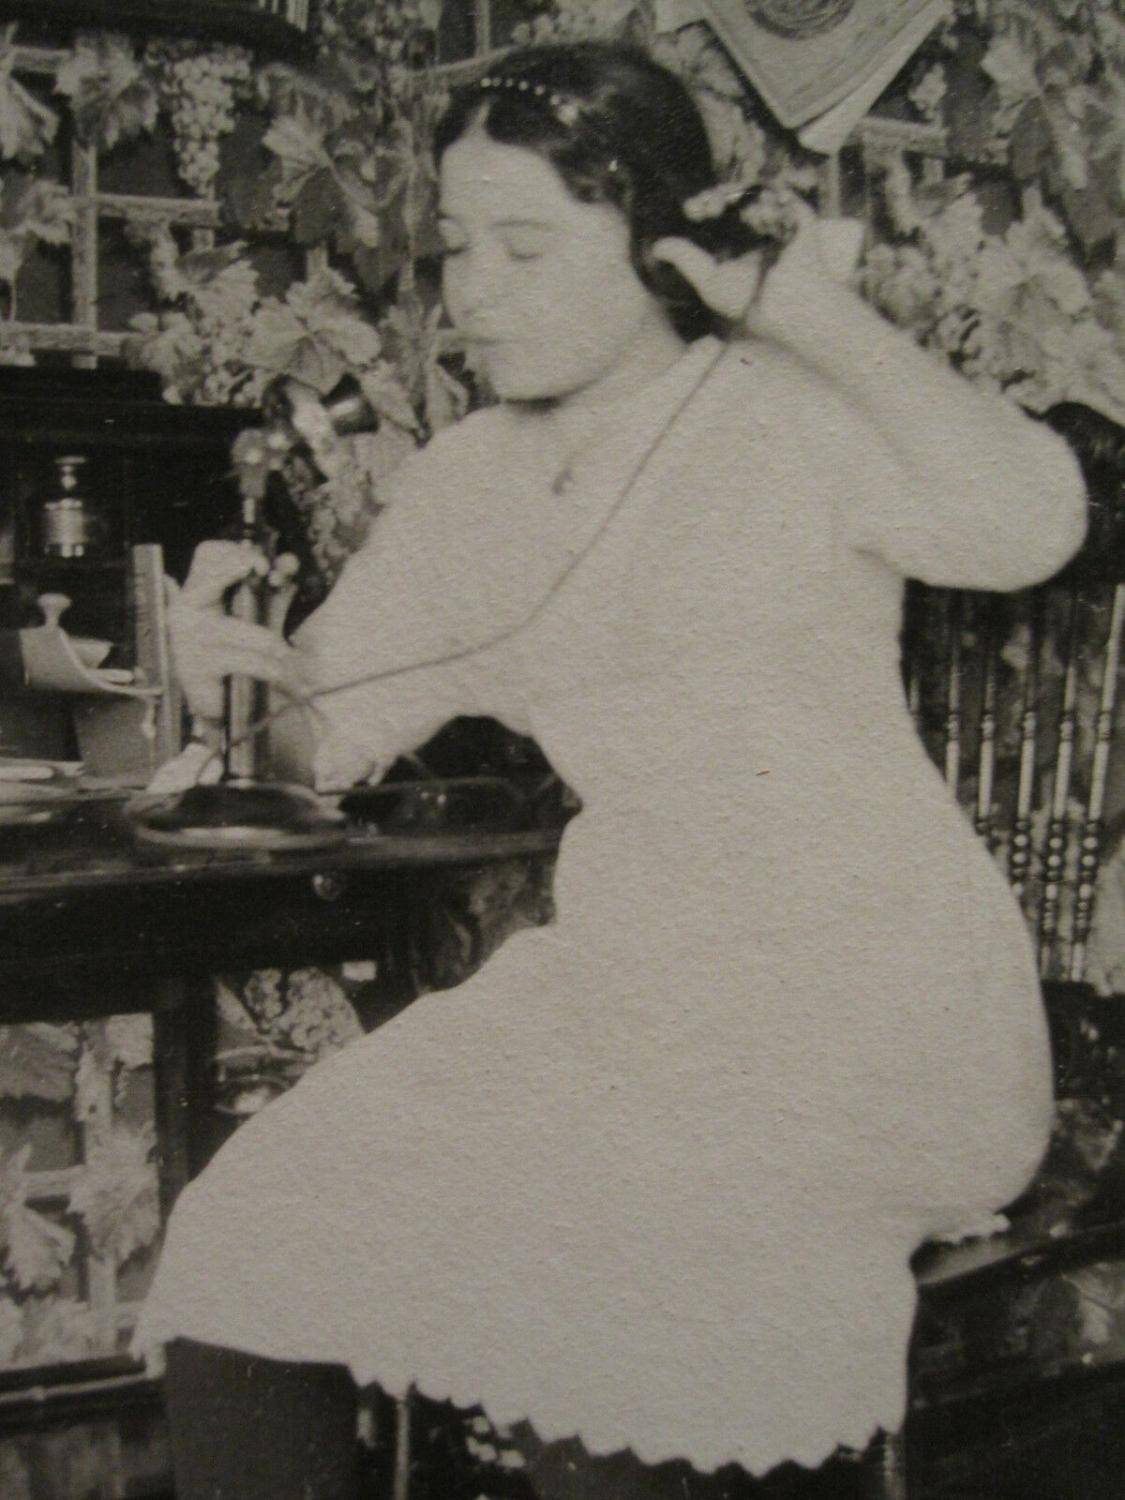 Antique VINTAGE ANTIQUE CANDLESTICK PHONE YOUNG GIRL INKWELL DESK MAGAZINE OLD PHOTO   [ ]